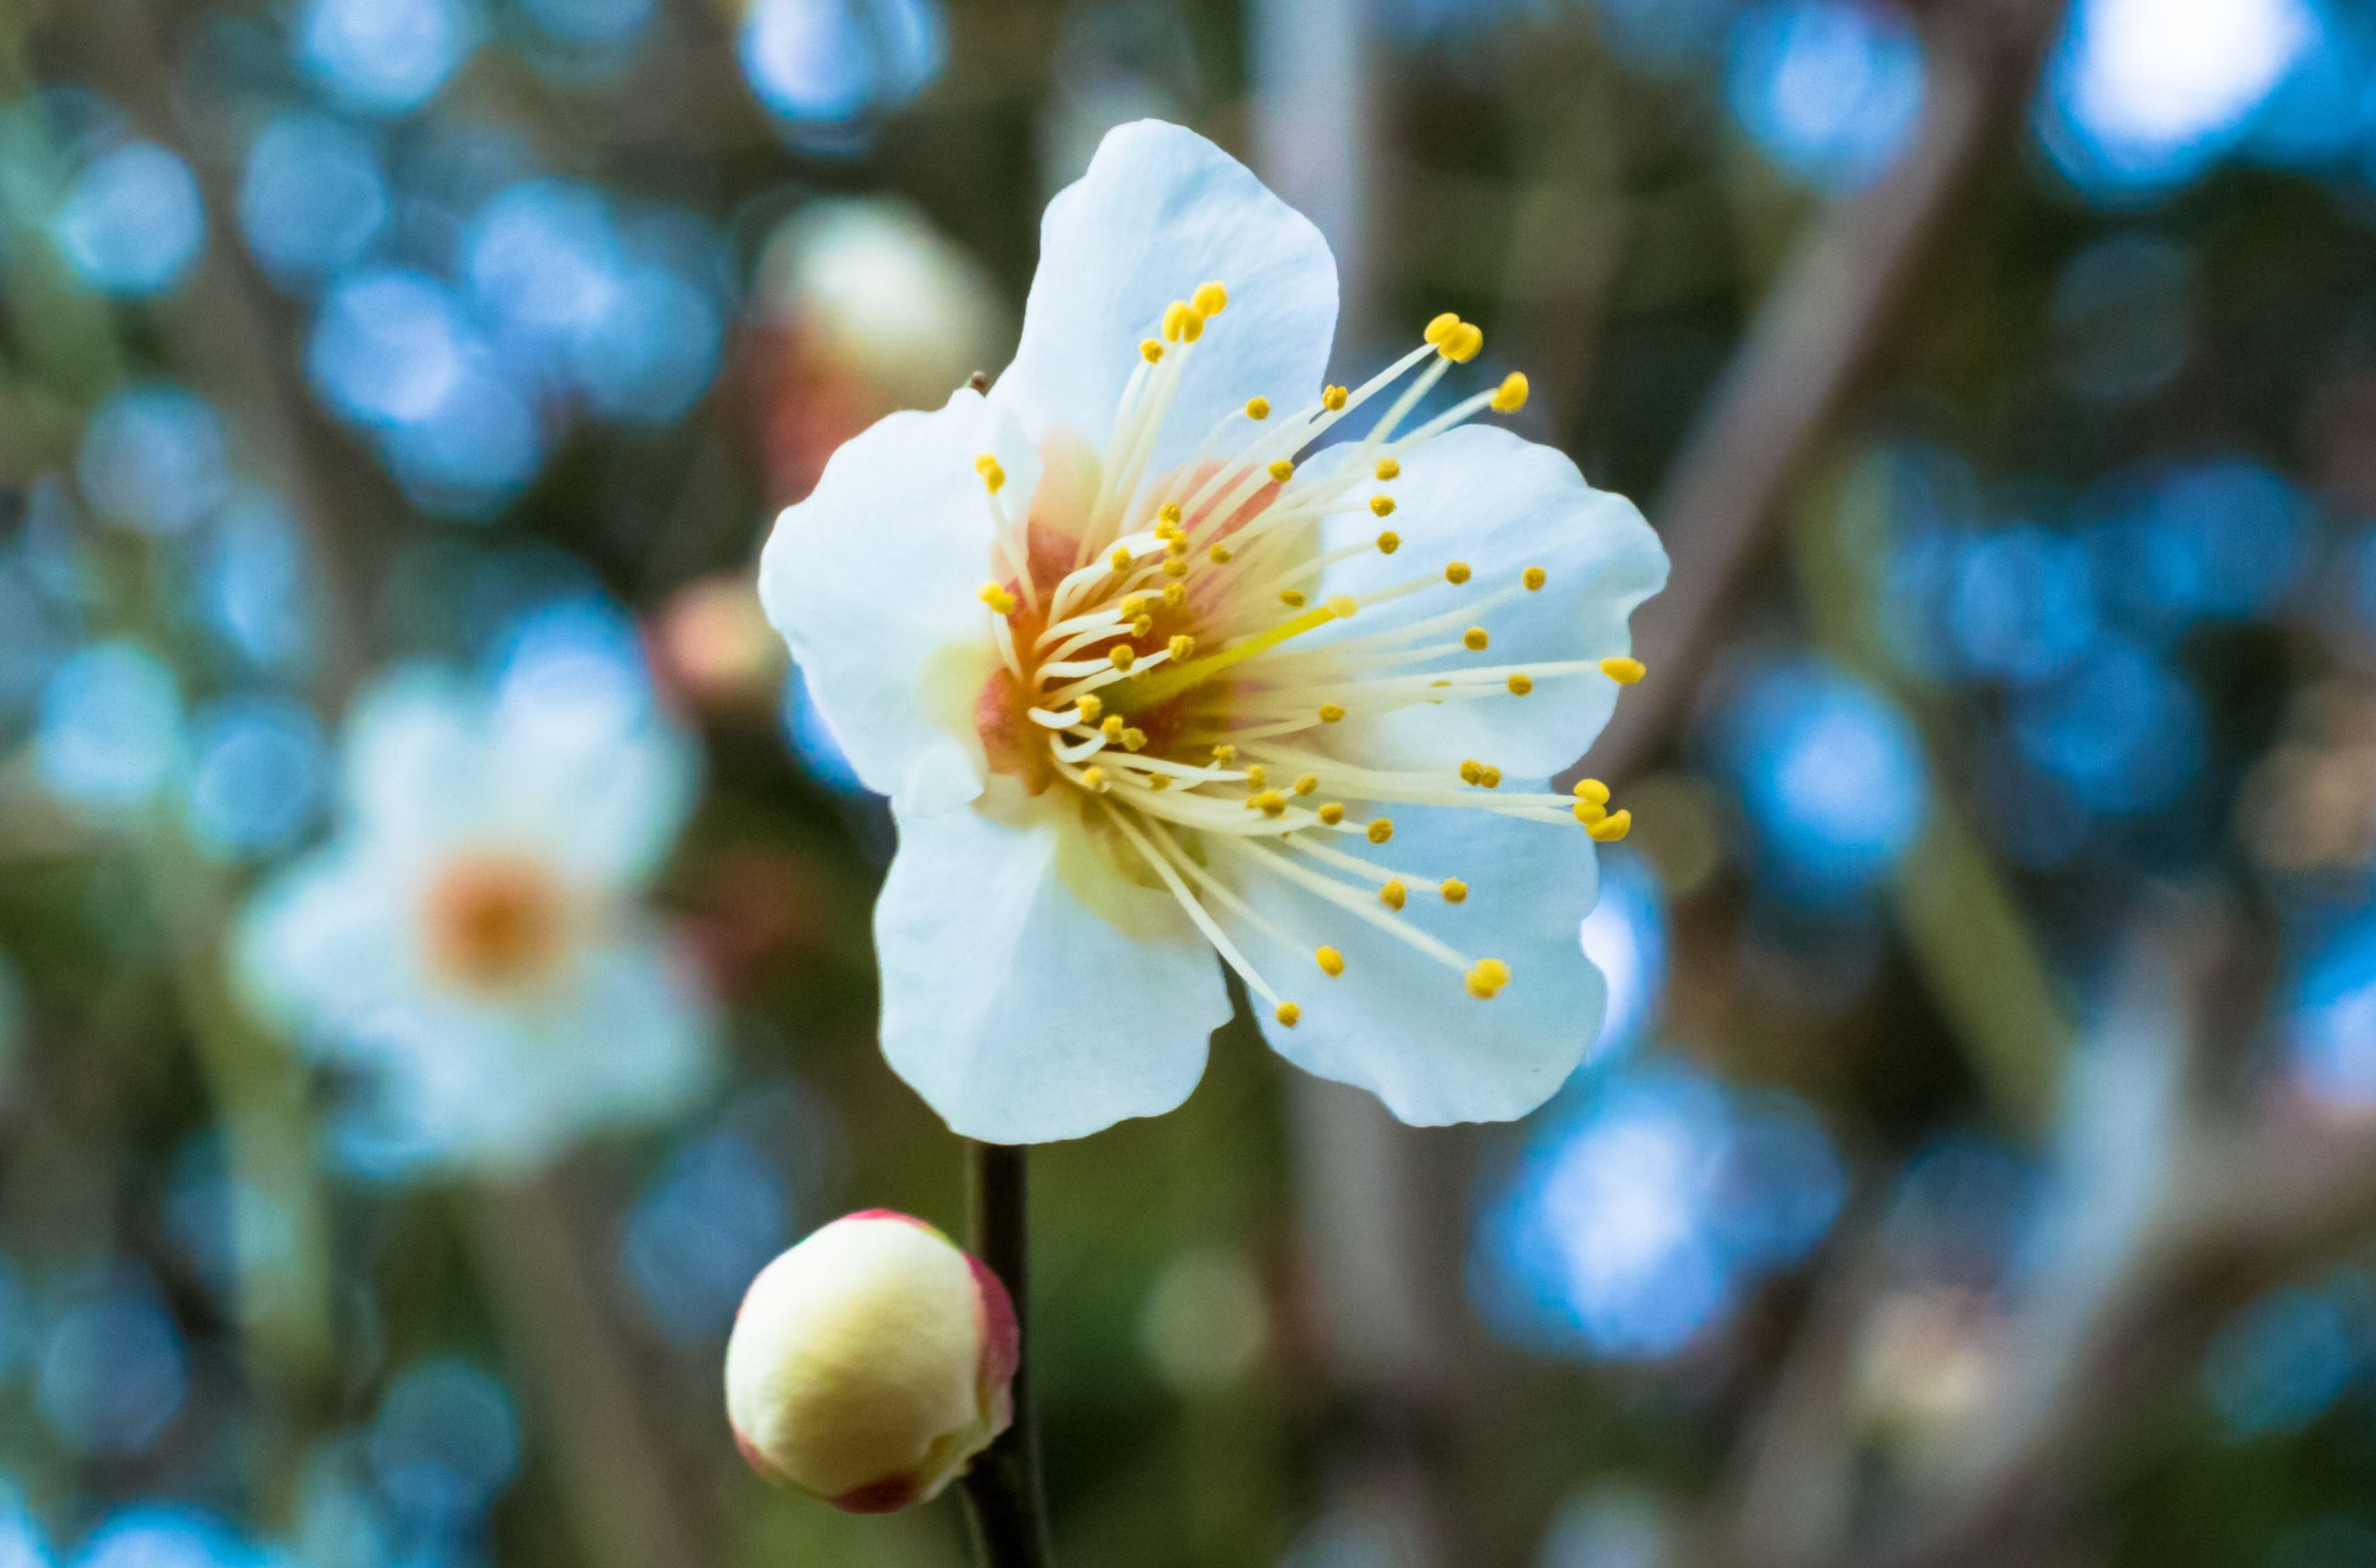 flower, petal, freshness, fragility, flower head, growth, pollen, beauty in nature, close-up, focus on foreground, white color, stamen, blooming, nature, single flower, in bloom, blossom, yellow, day, outdoors